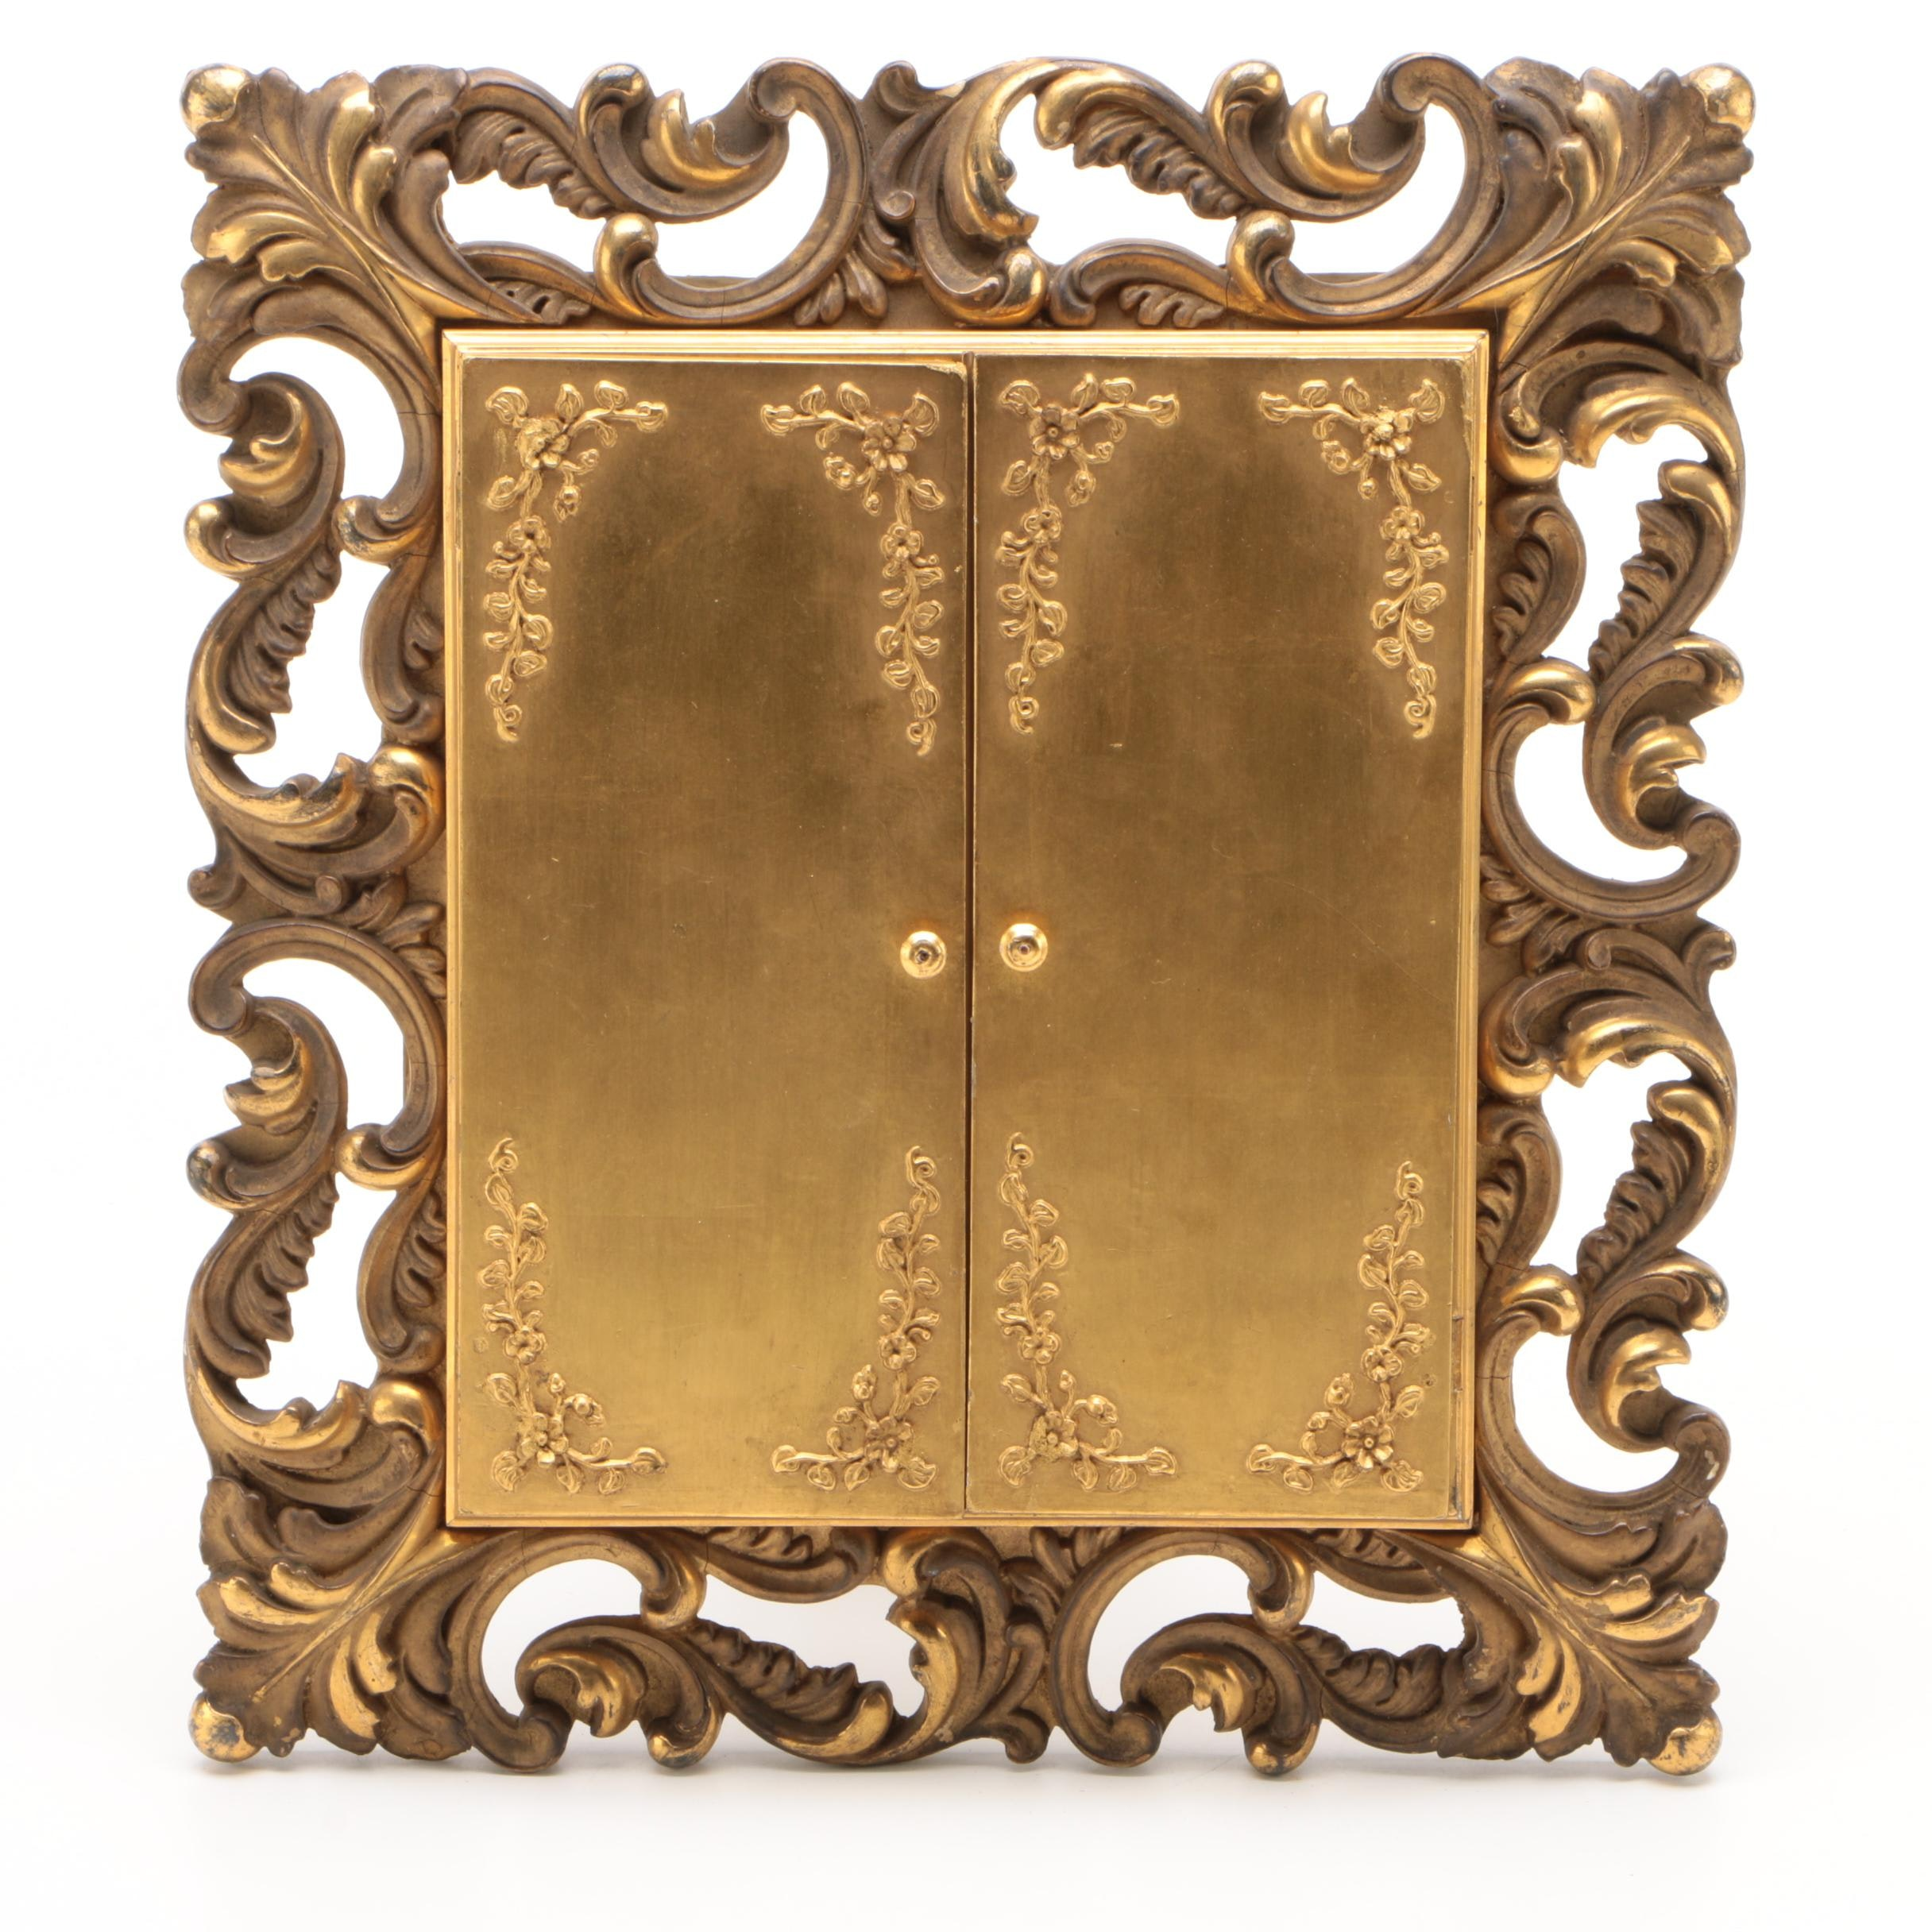 Rococo Style Giltwood and Gesso Cabinet Frame